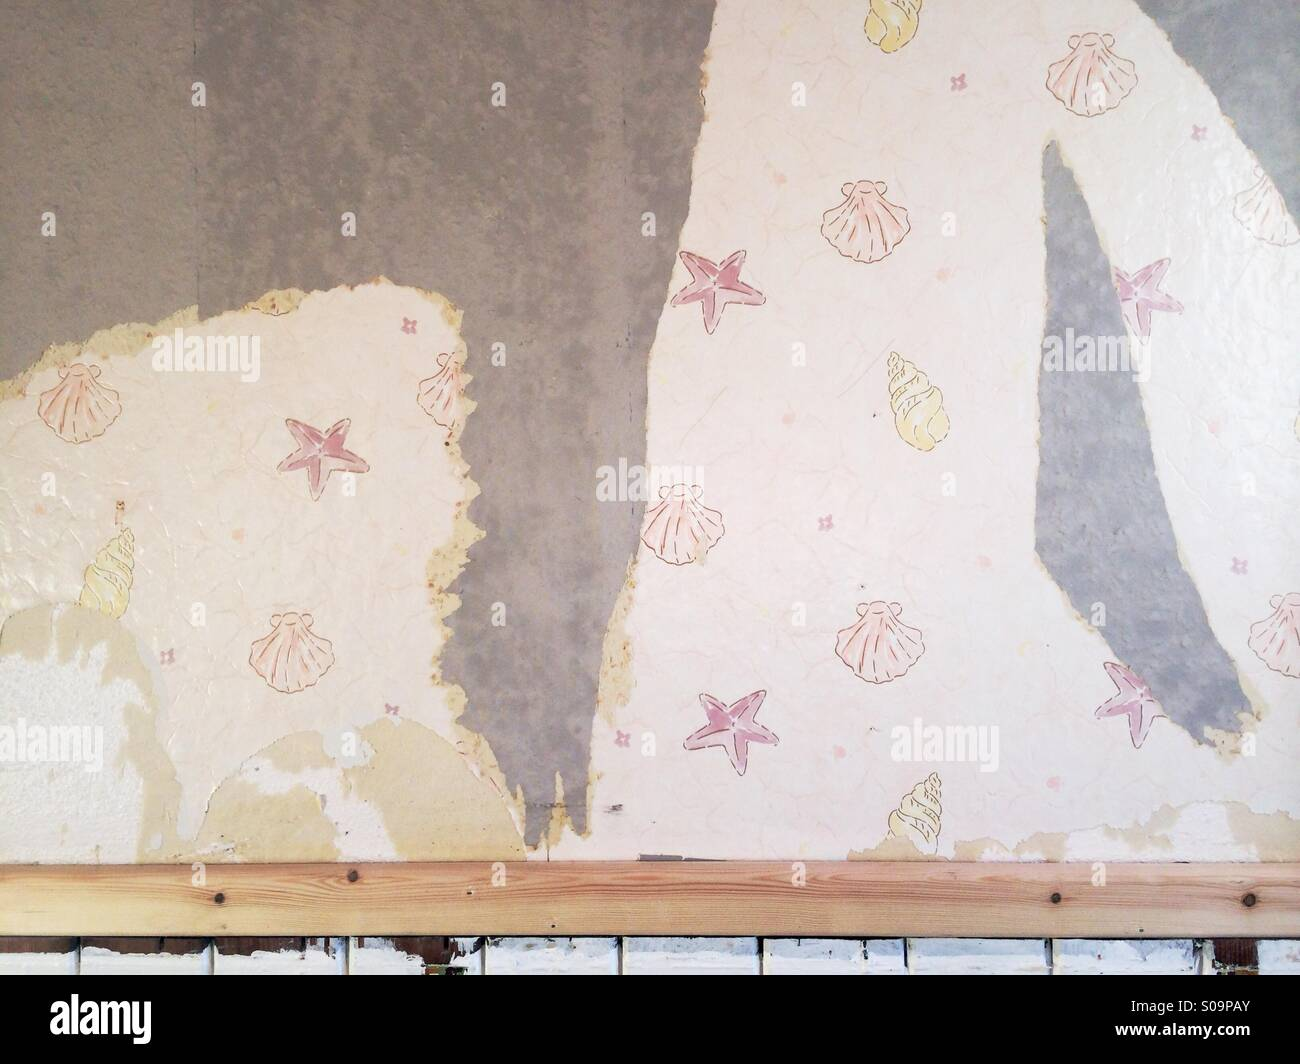 Stripping Wallpaper While Re Decorating And Finding An Old Design Beneath